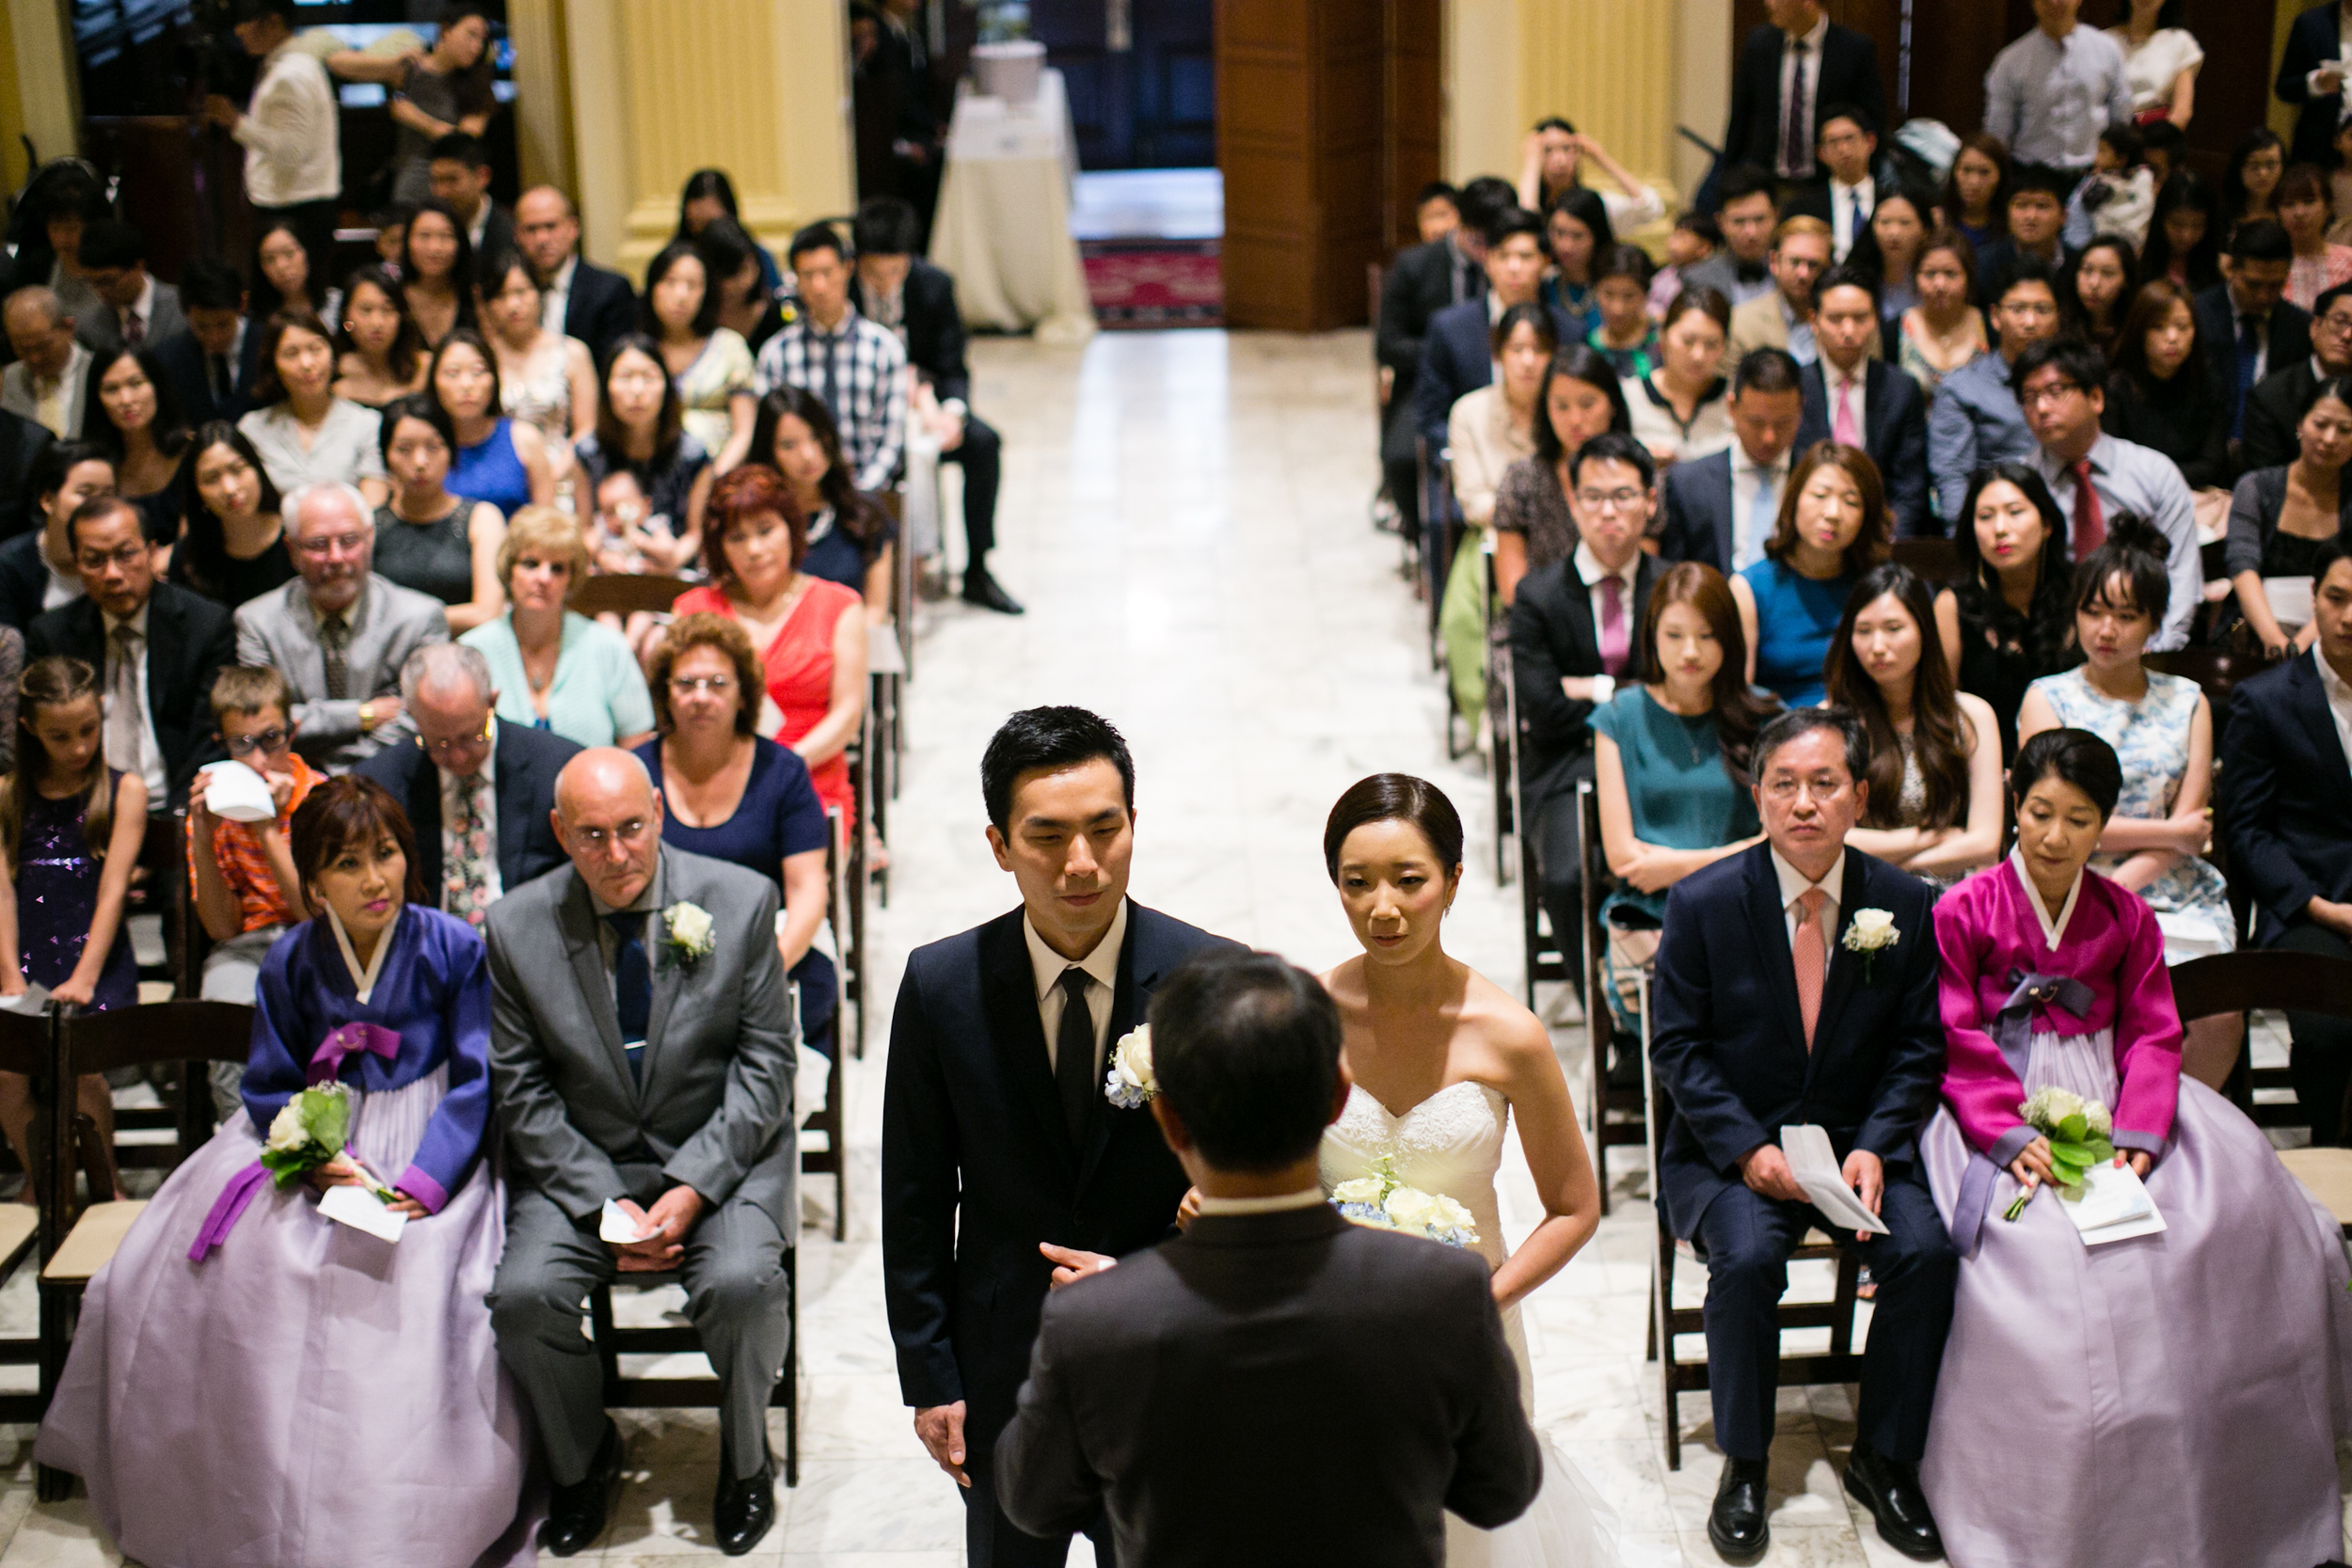 Racquet Club wedding by Peach Plum Pear Photo_034.jpg